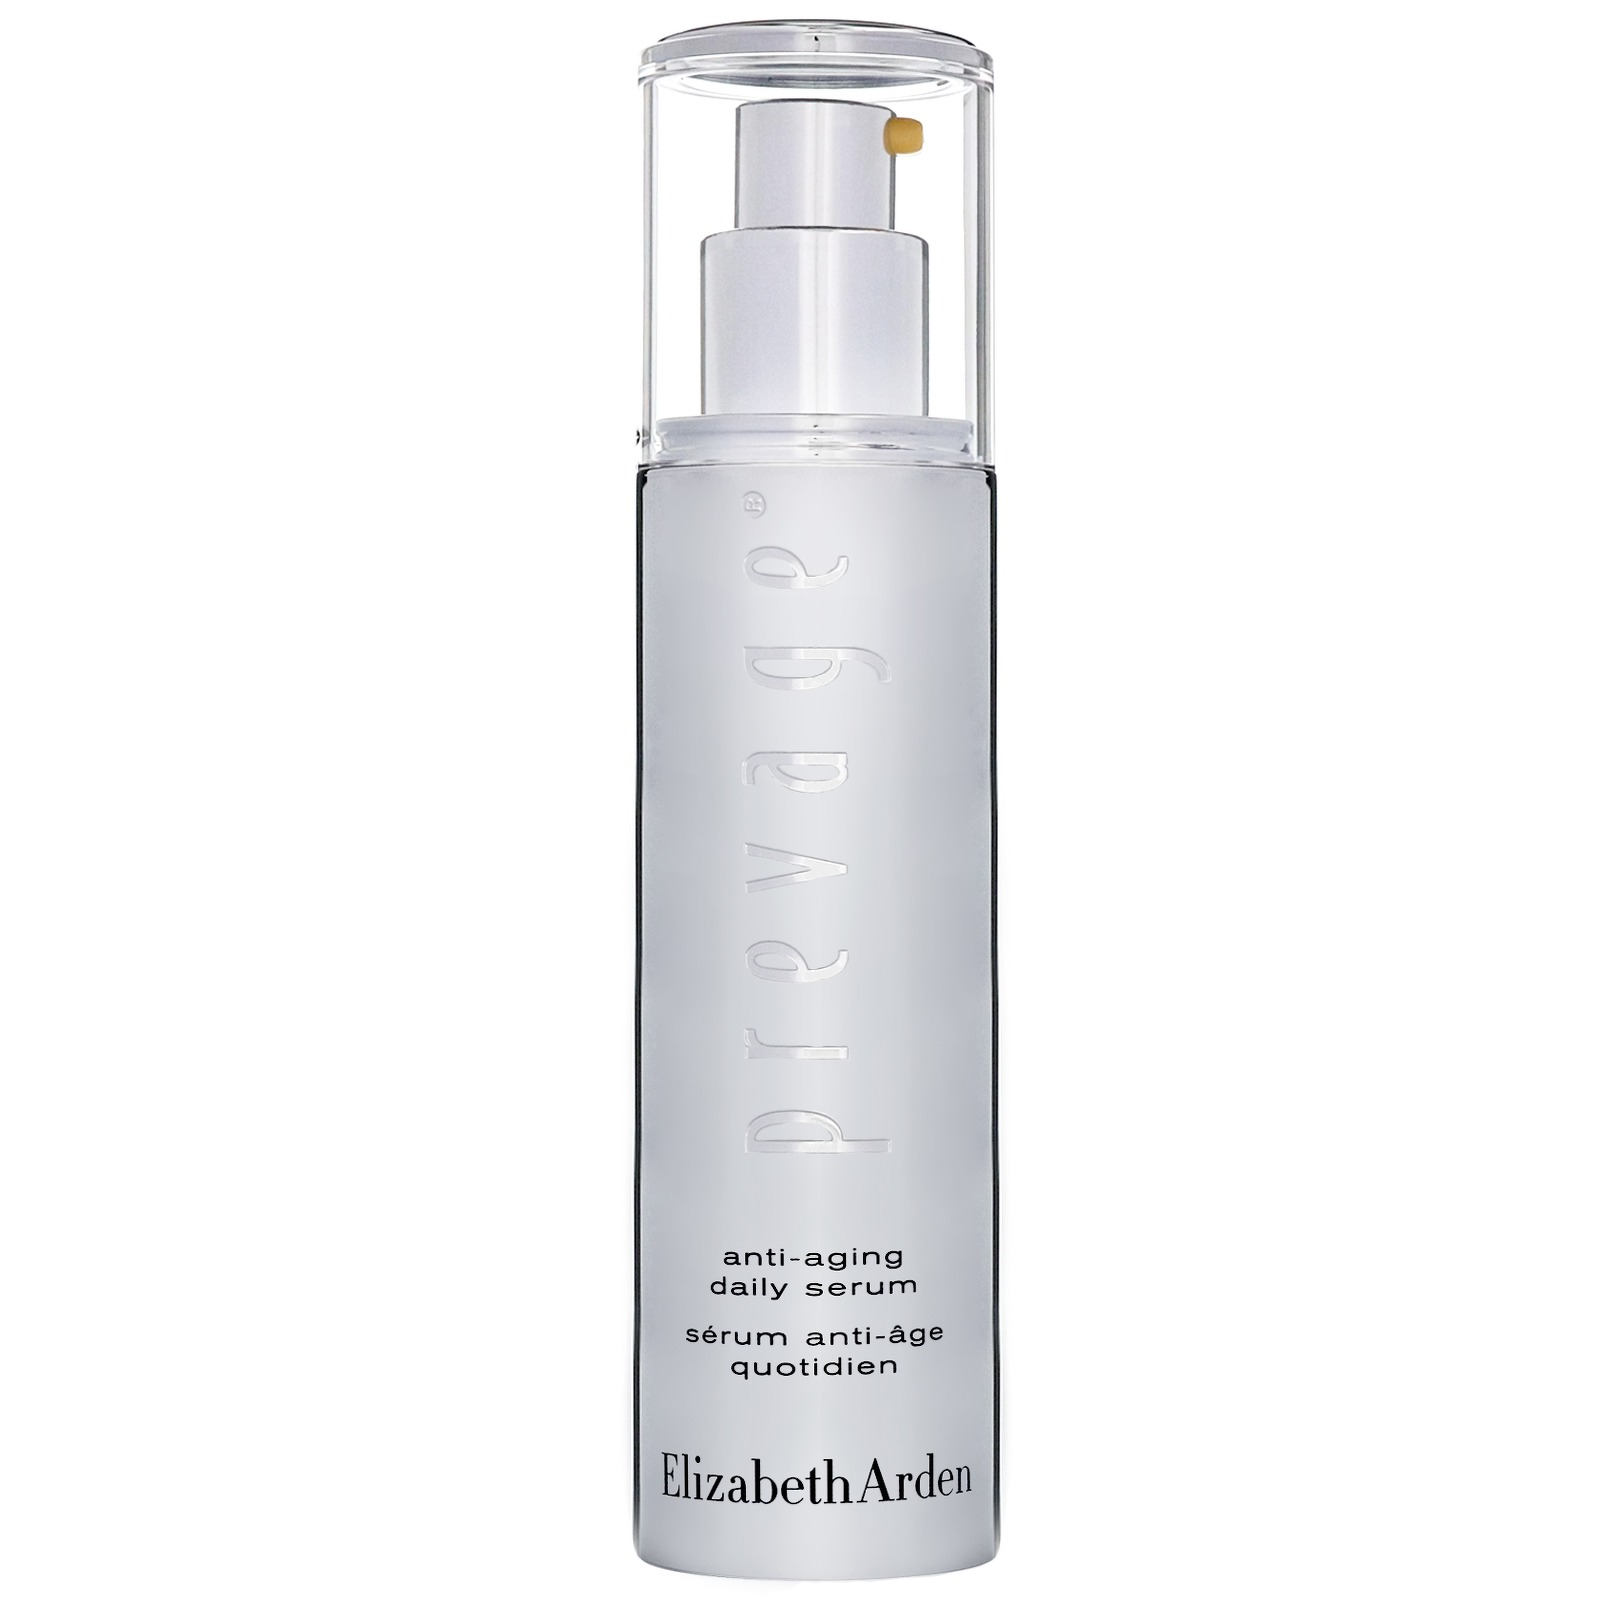 Elizabeth Arden Prevage Anti-Ageing Daily Serum 50ml / 1.7 fl.oz.